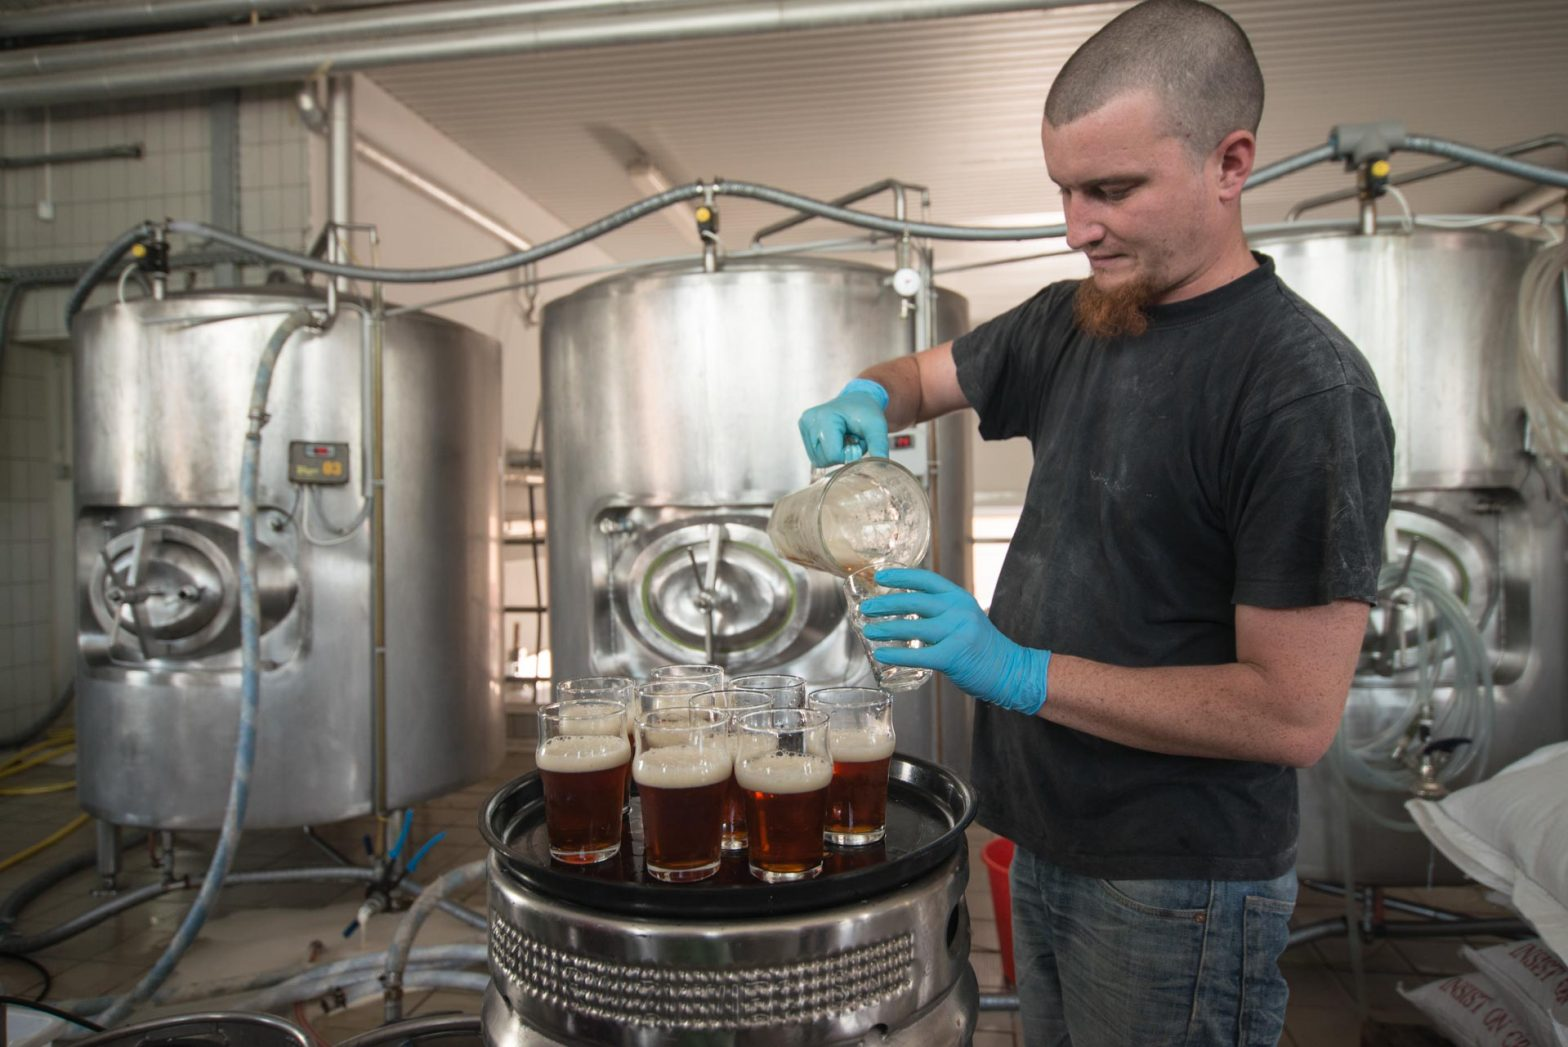 The Rauchbier Recipe for Brewing Smoked Beer